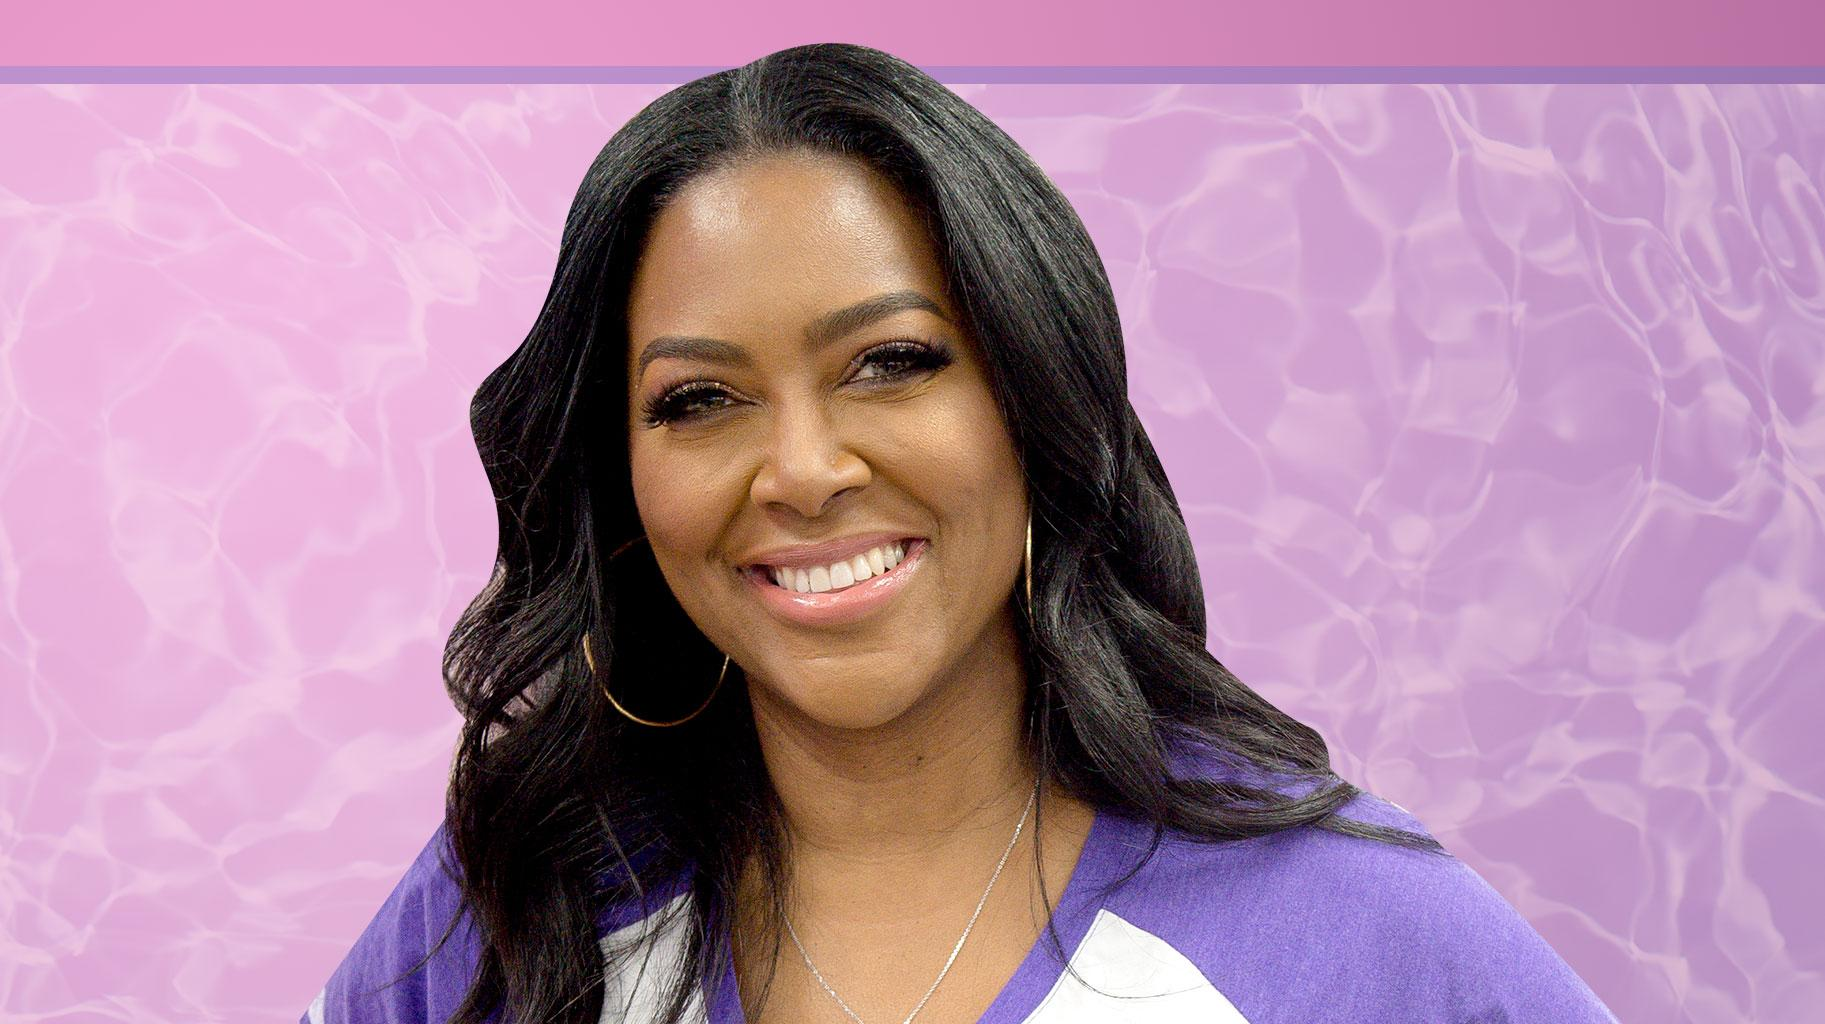 Kenya Moore Is Announcing Her Partnership With Sally Beauty